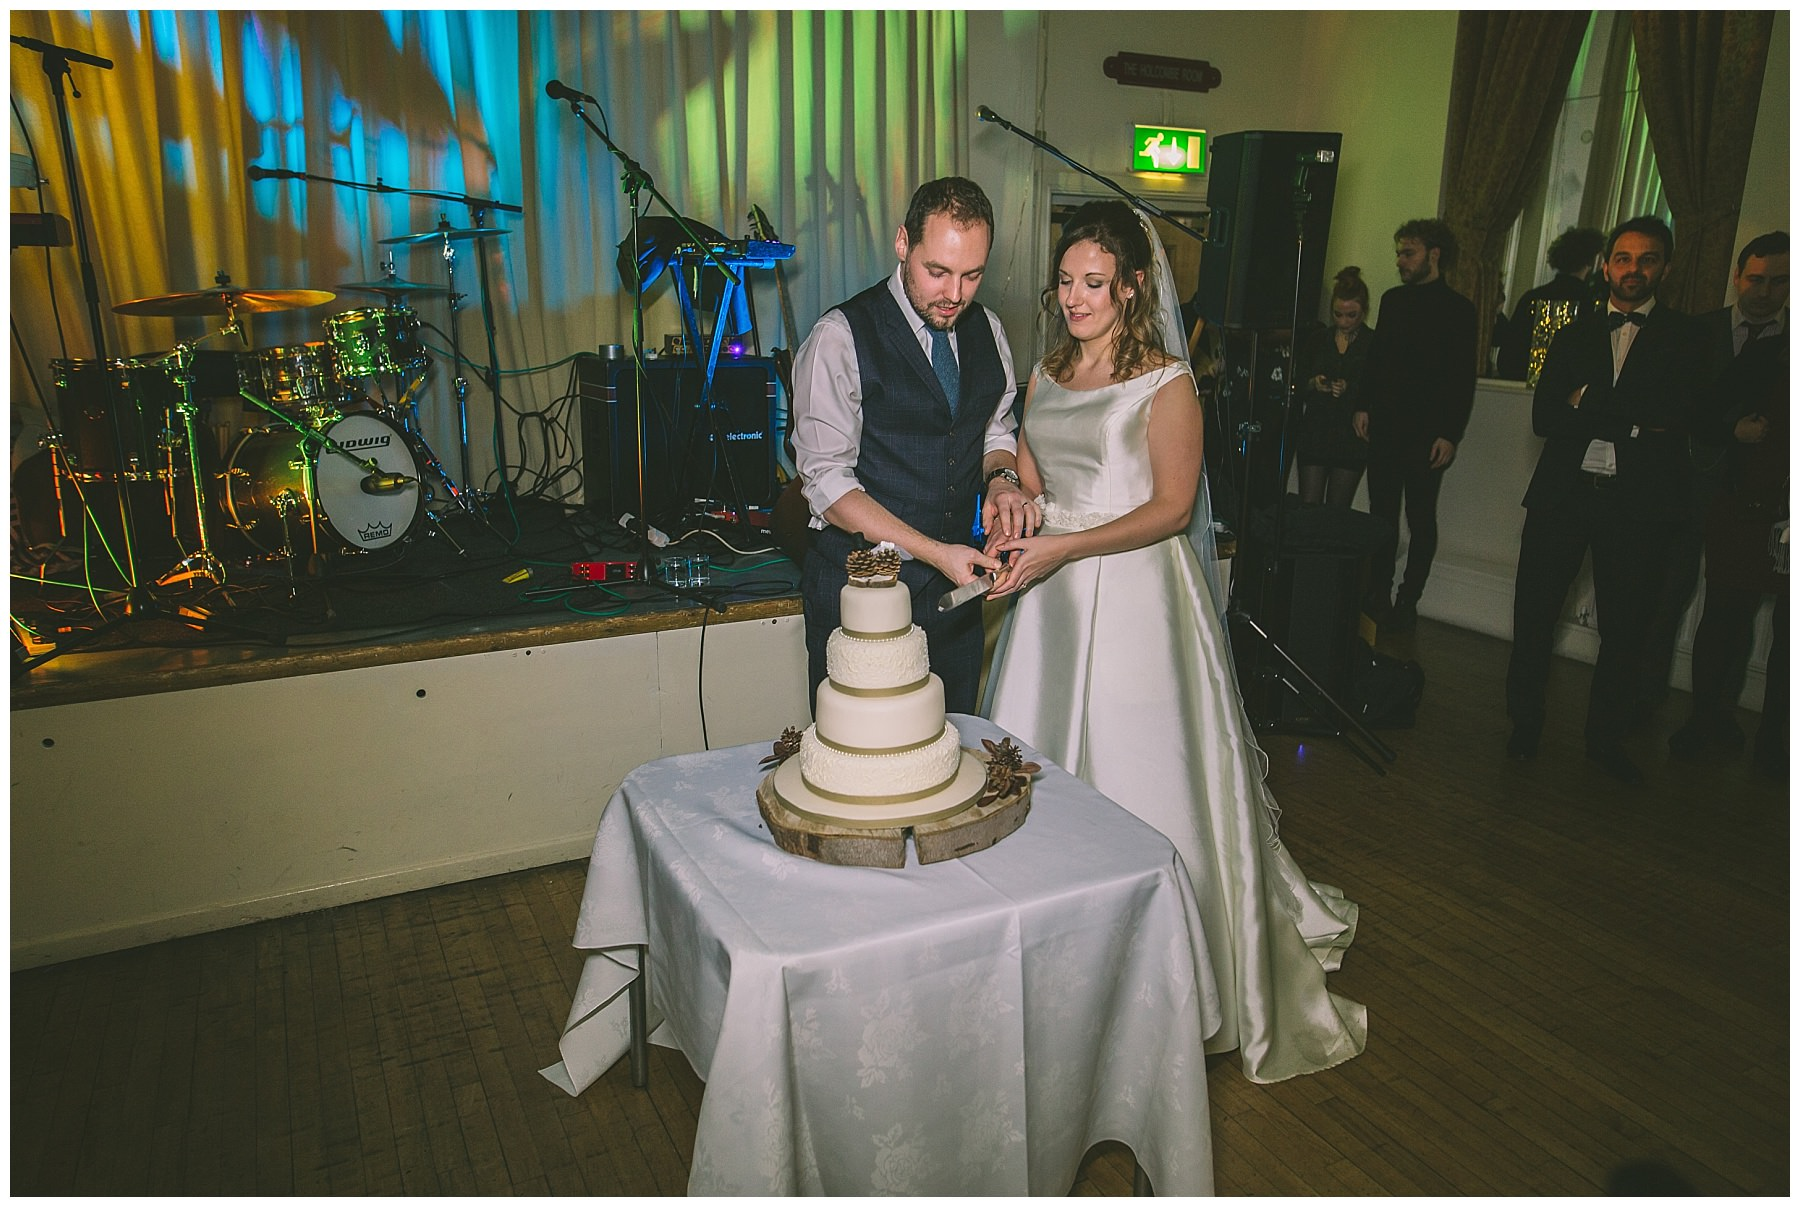 Cake cutting at ramsbottom wedding